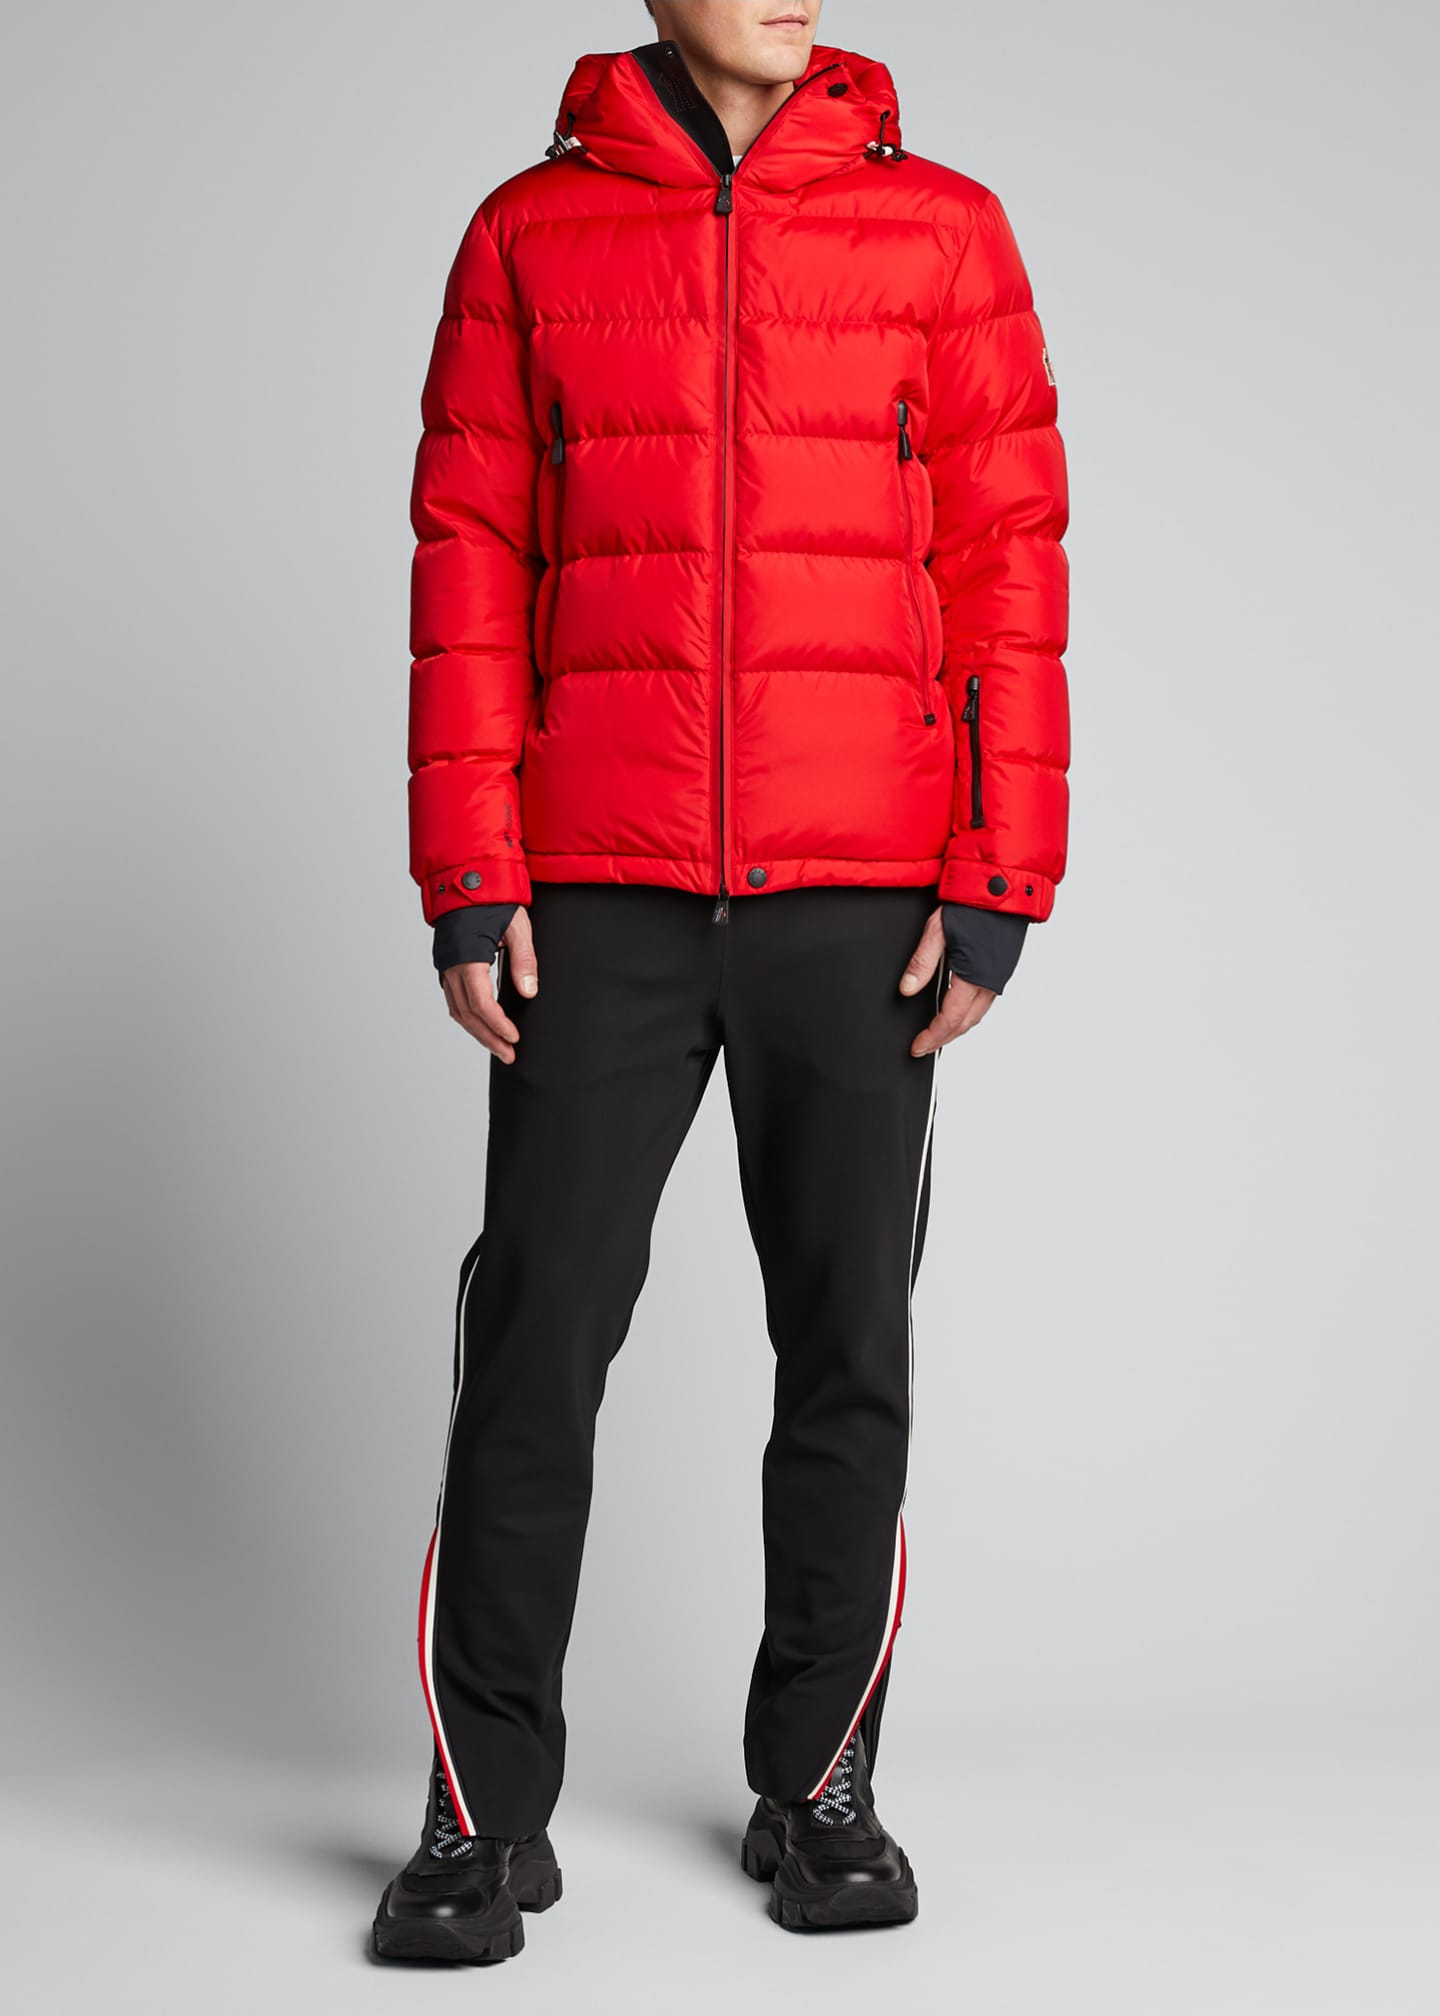 Moncler Men's Grenoble Isorno Logo Typography Puffer Jacket